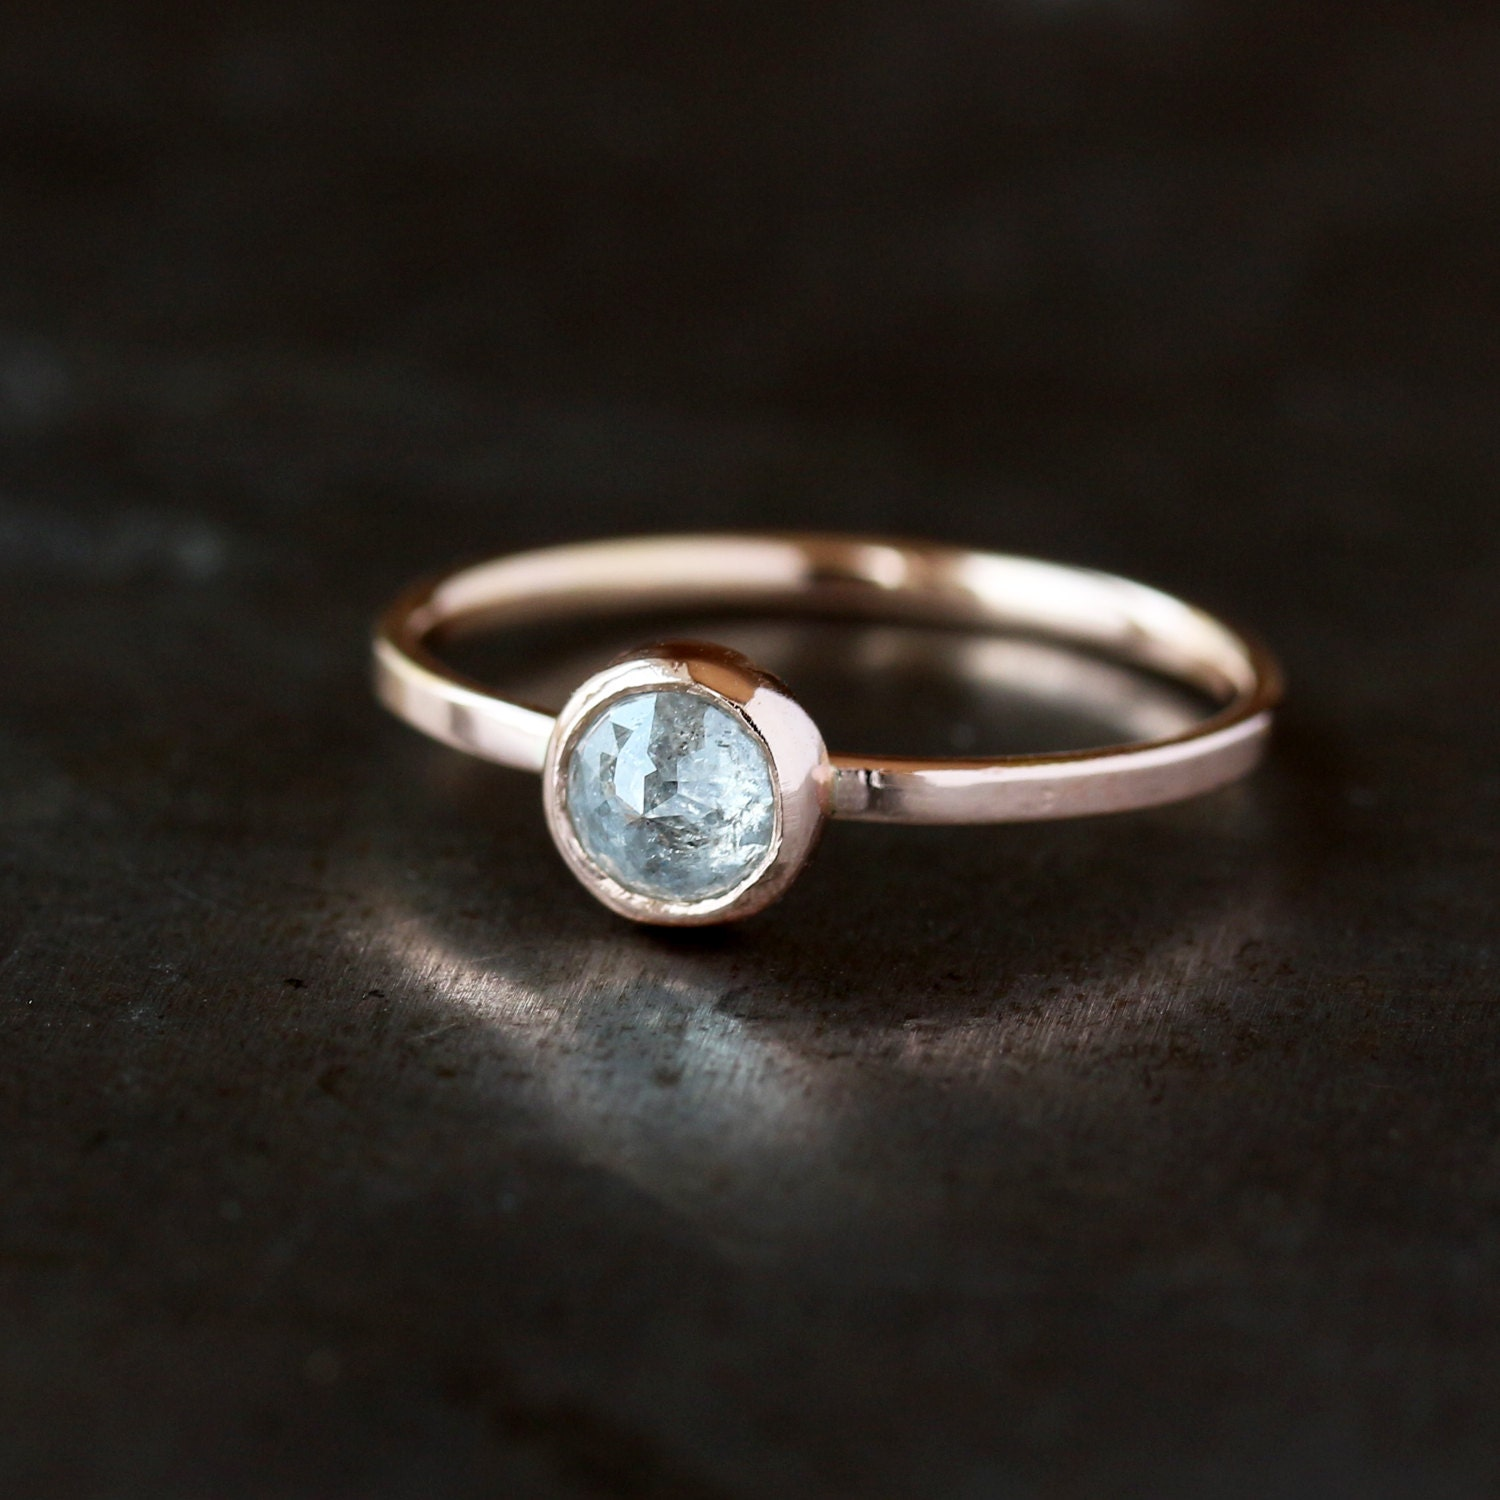 Icy Rose Cut Diamond Ring 14k Rose Gold Band Salt and Pepper